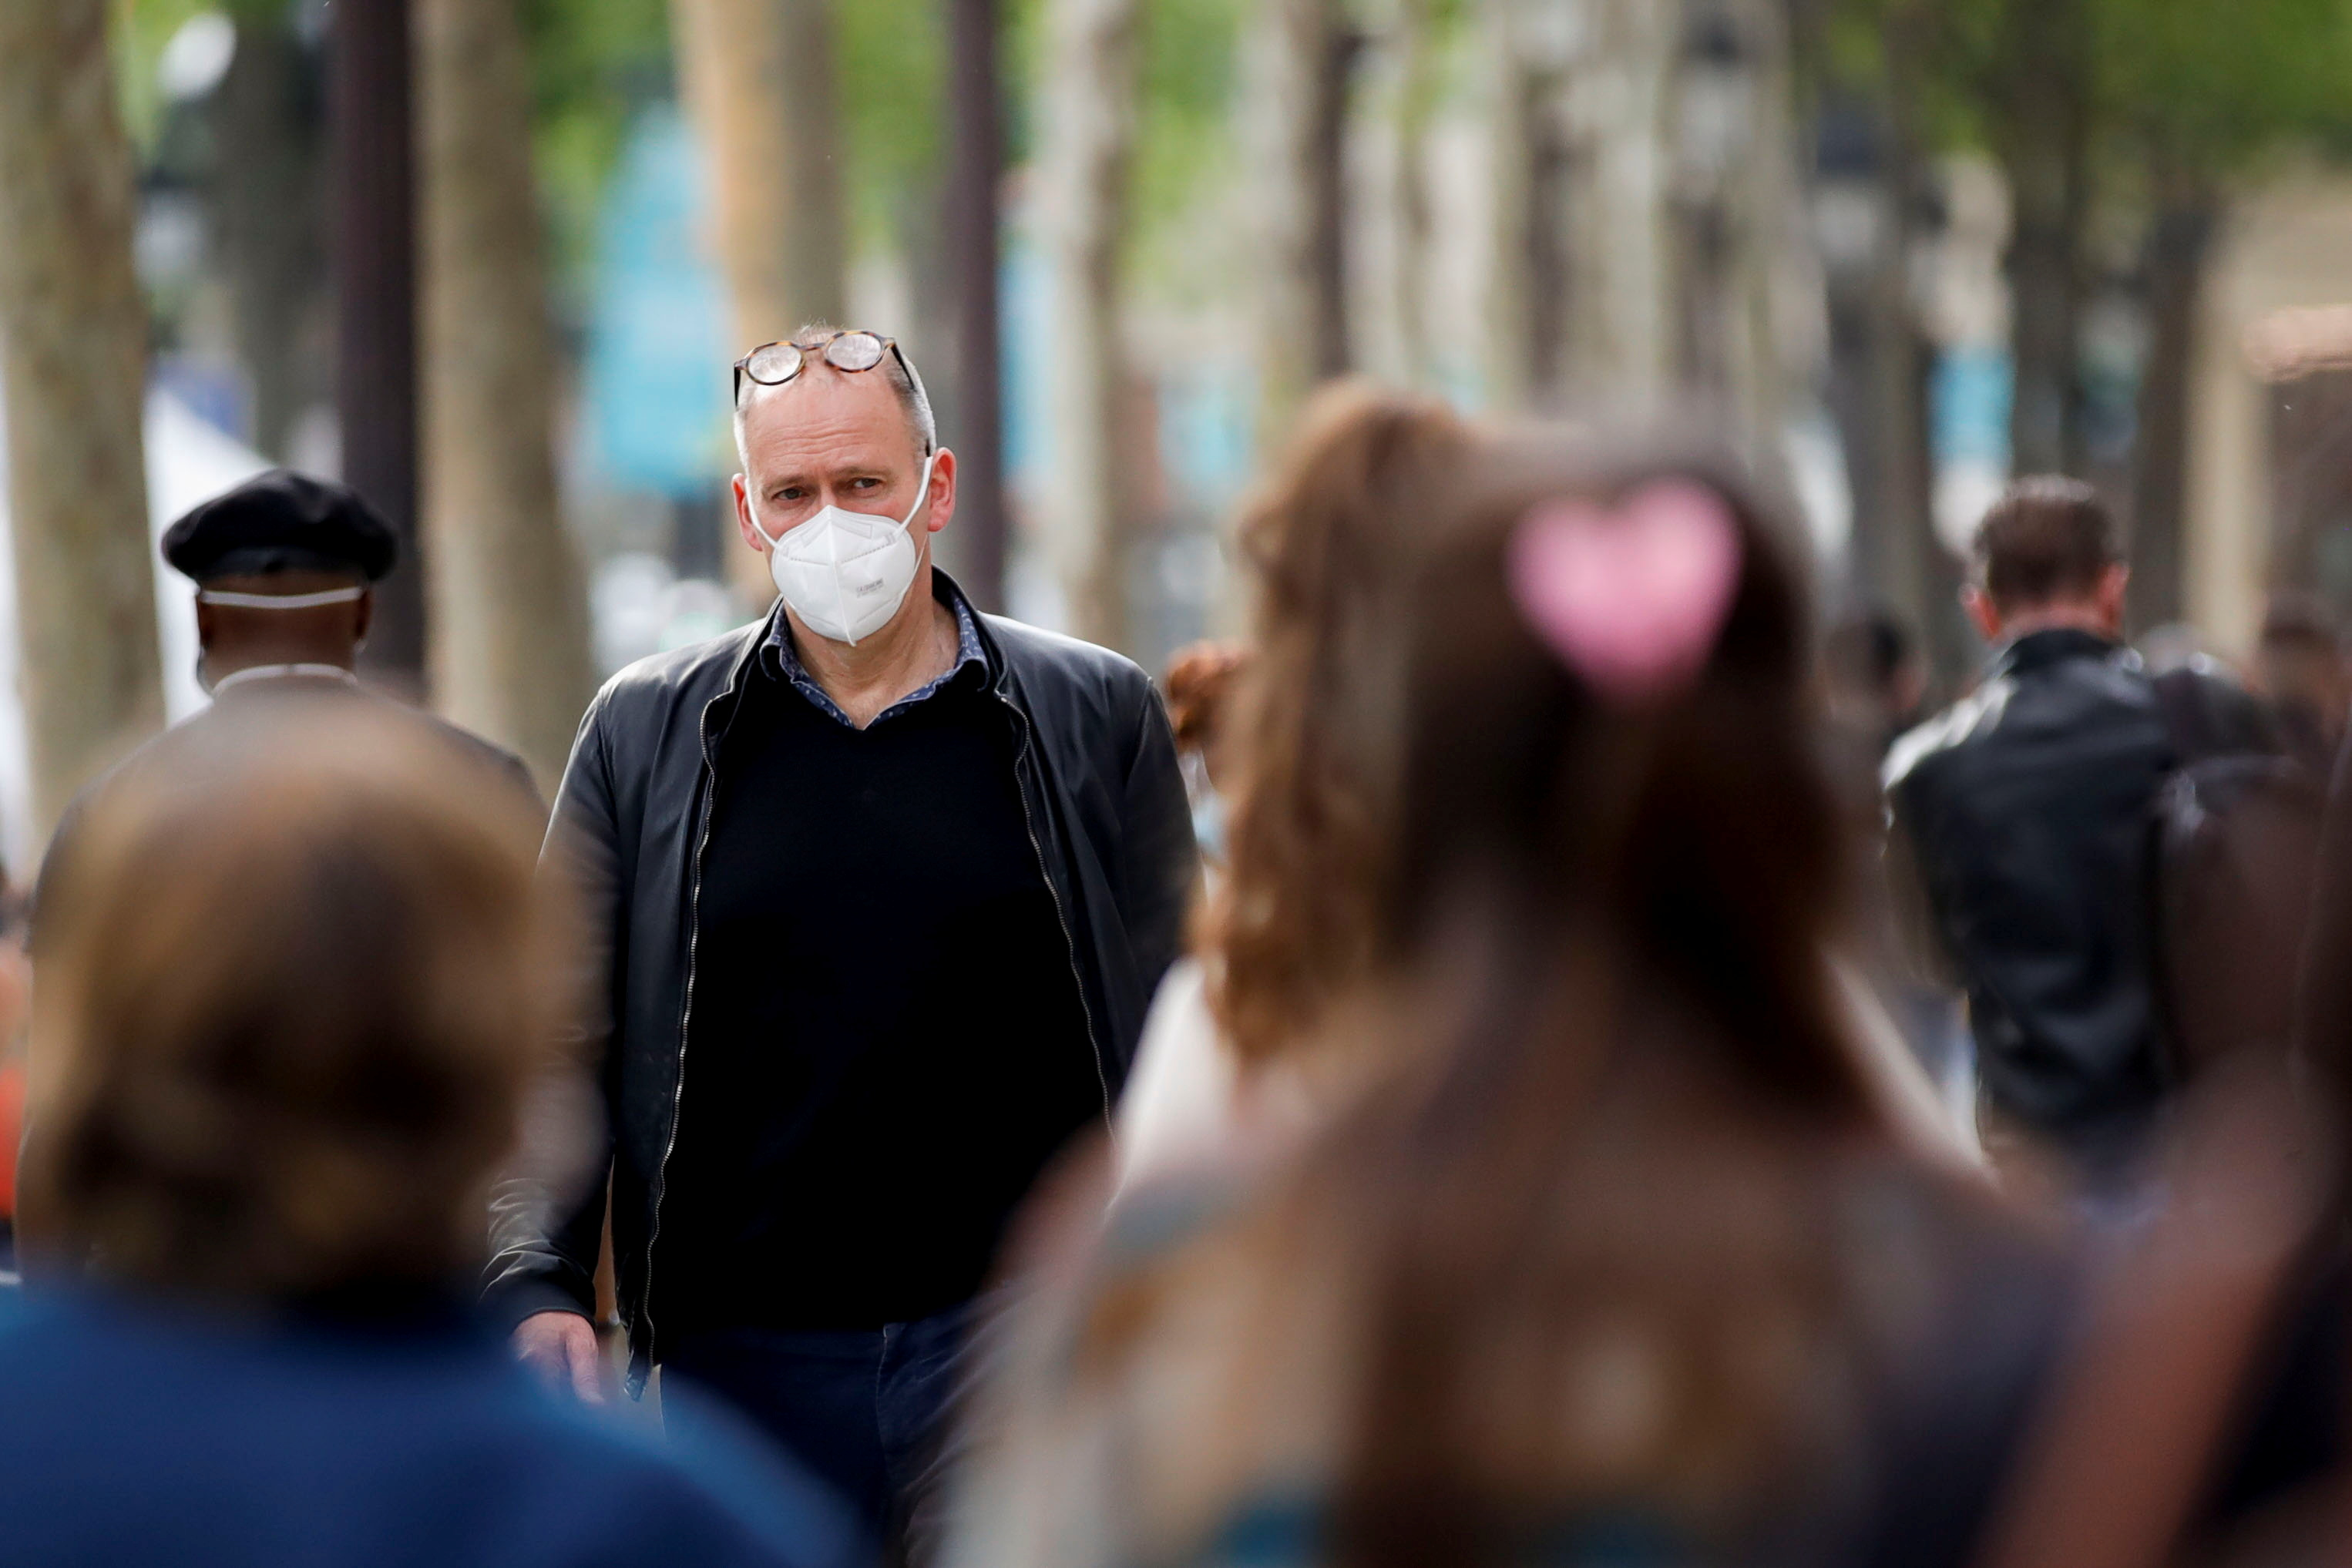 People wearing protective face masks walk on the Champs Elysees Avenue, amid the coronavirus disease (COVID-19) outbreak, in France, May 27, 2021. REUTERS/Sarah Meyssonnier